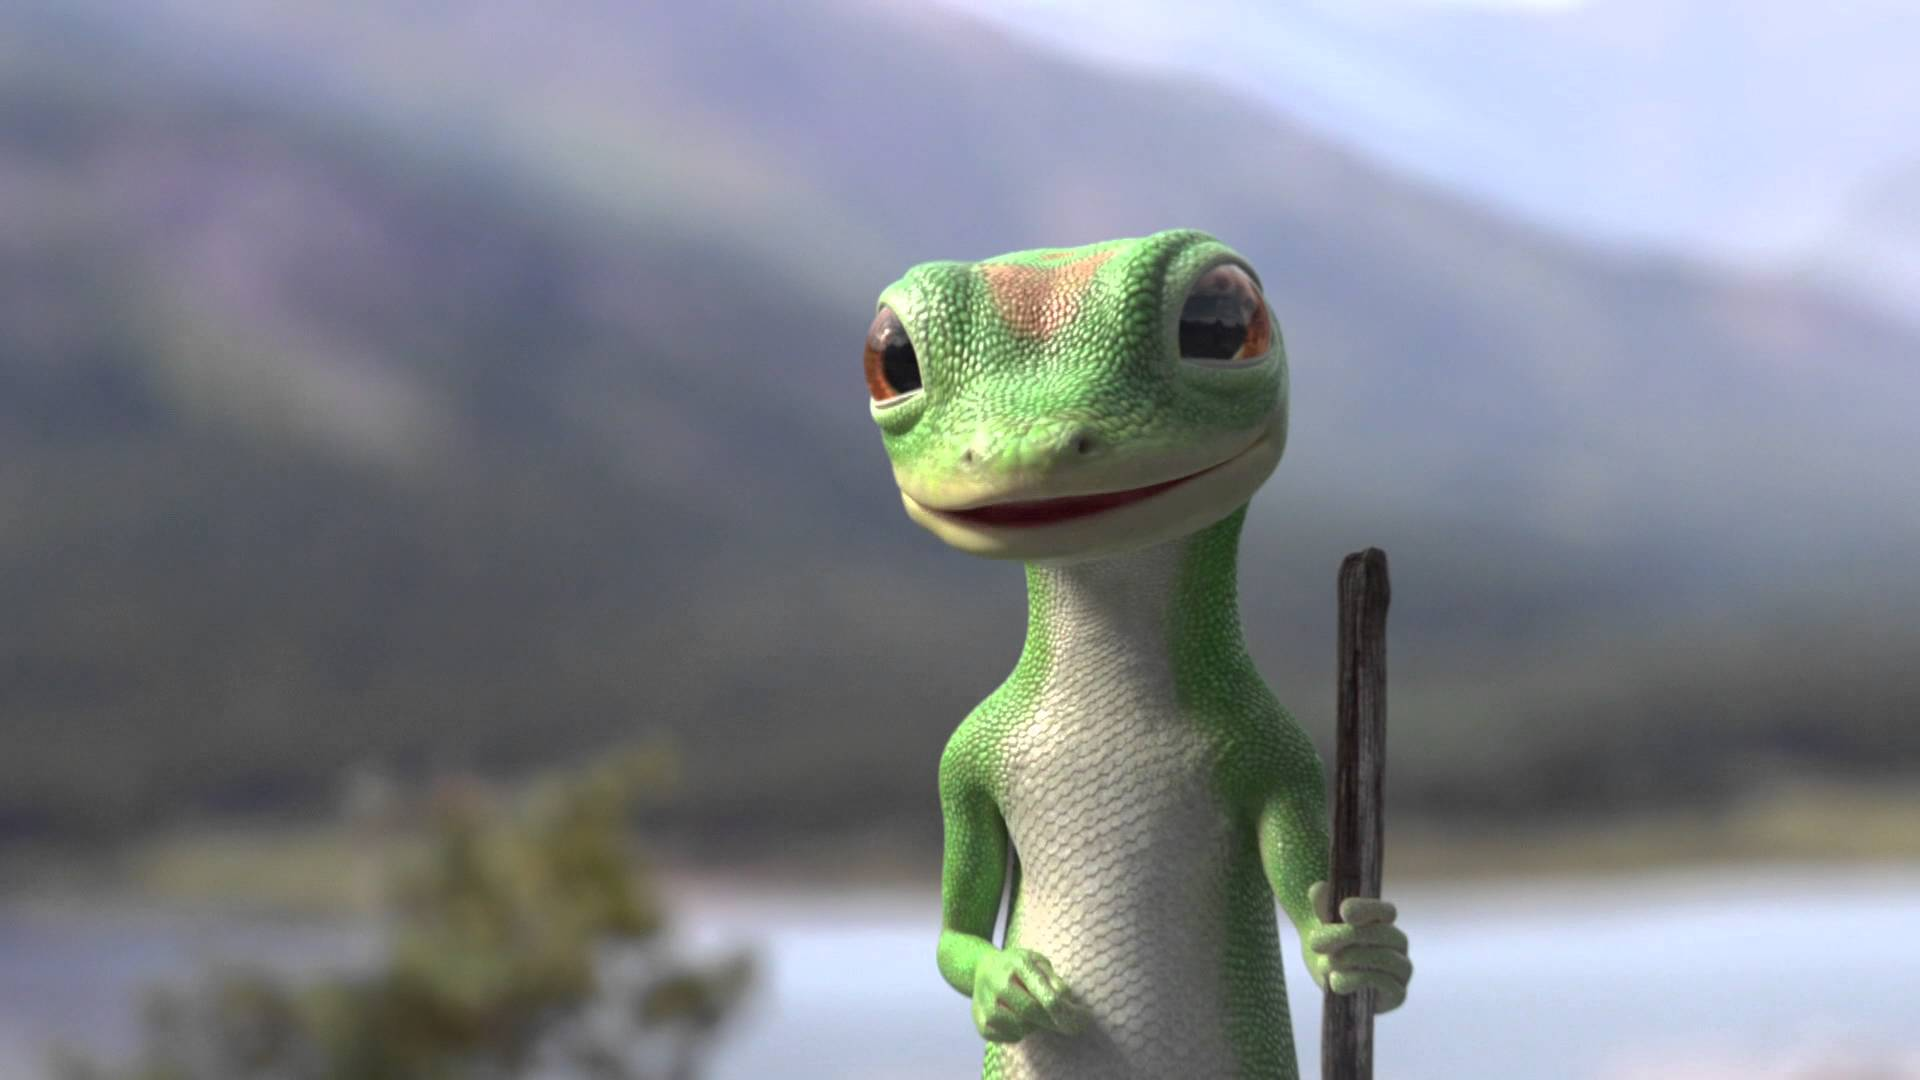 Geico High Quality Background on Wallpapers Vista